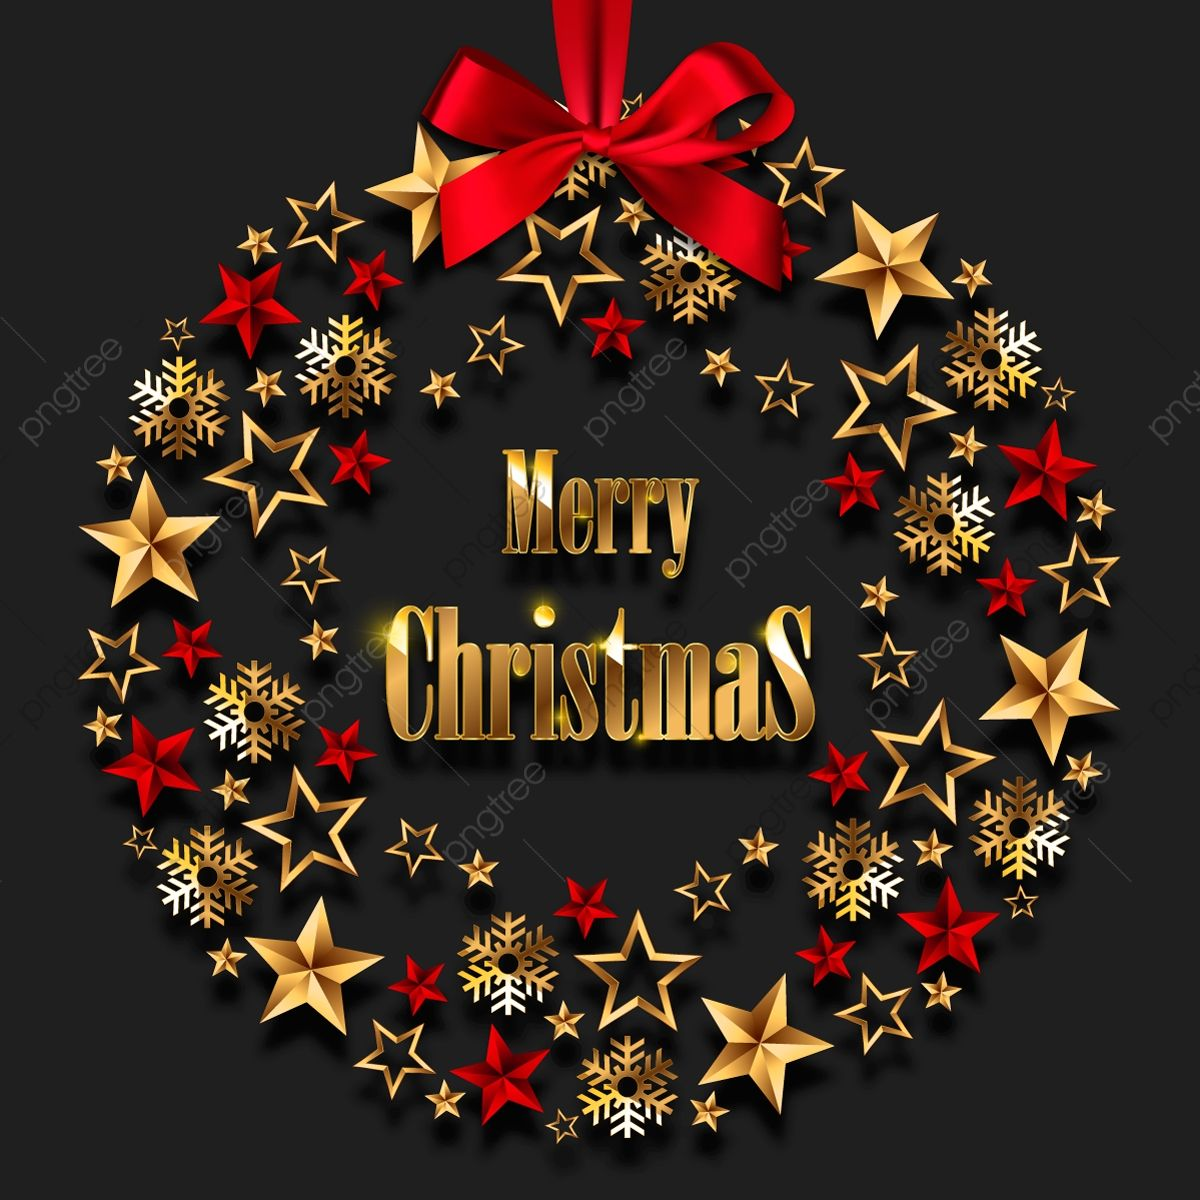 Download This Christmas Wreath With Golden Stars And Decorations Merry Christmas Backgro Christmas Wreaths Merry Christmas Wallpaper Merry Christmas Pictures